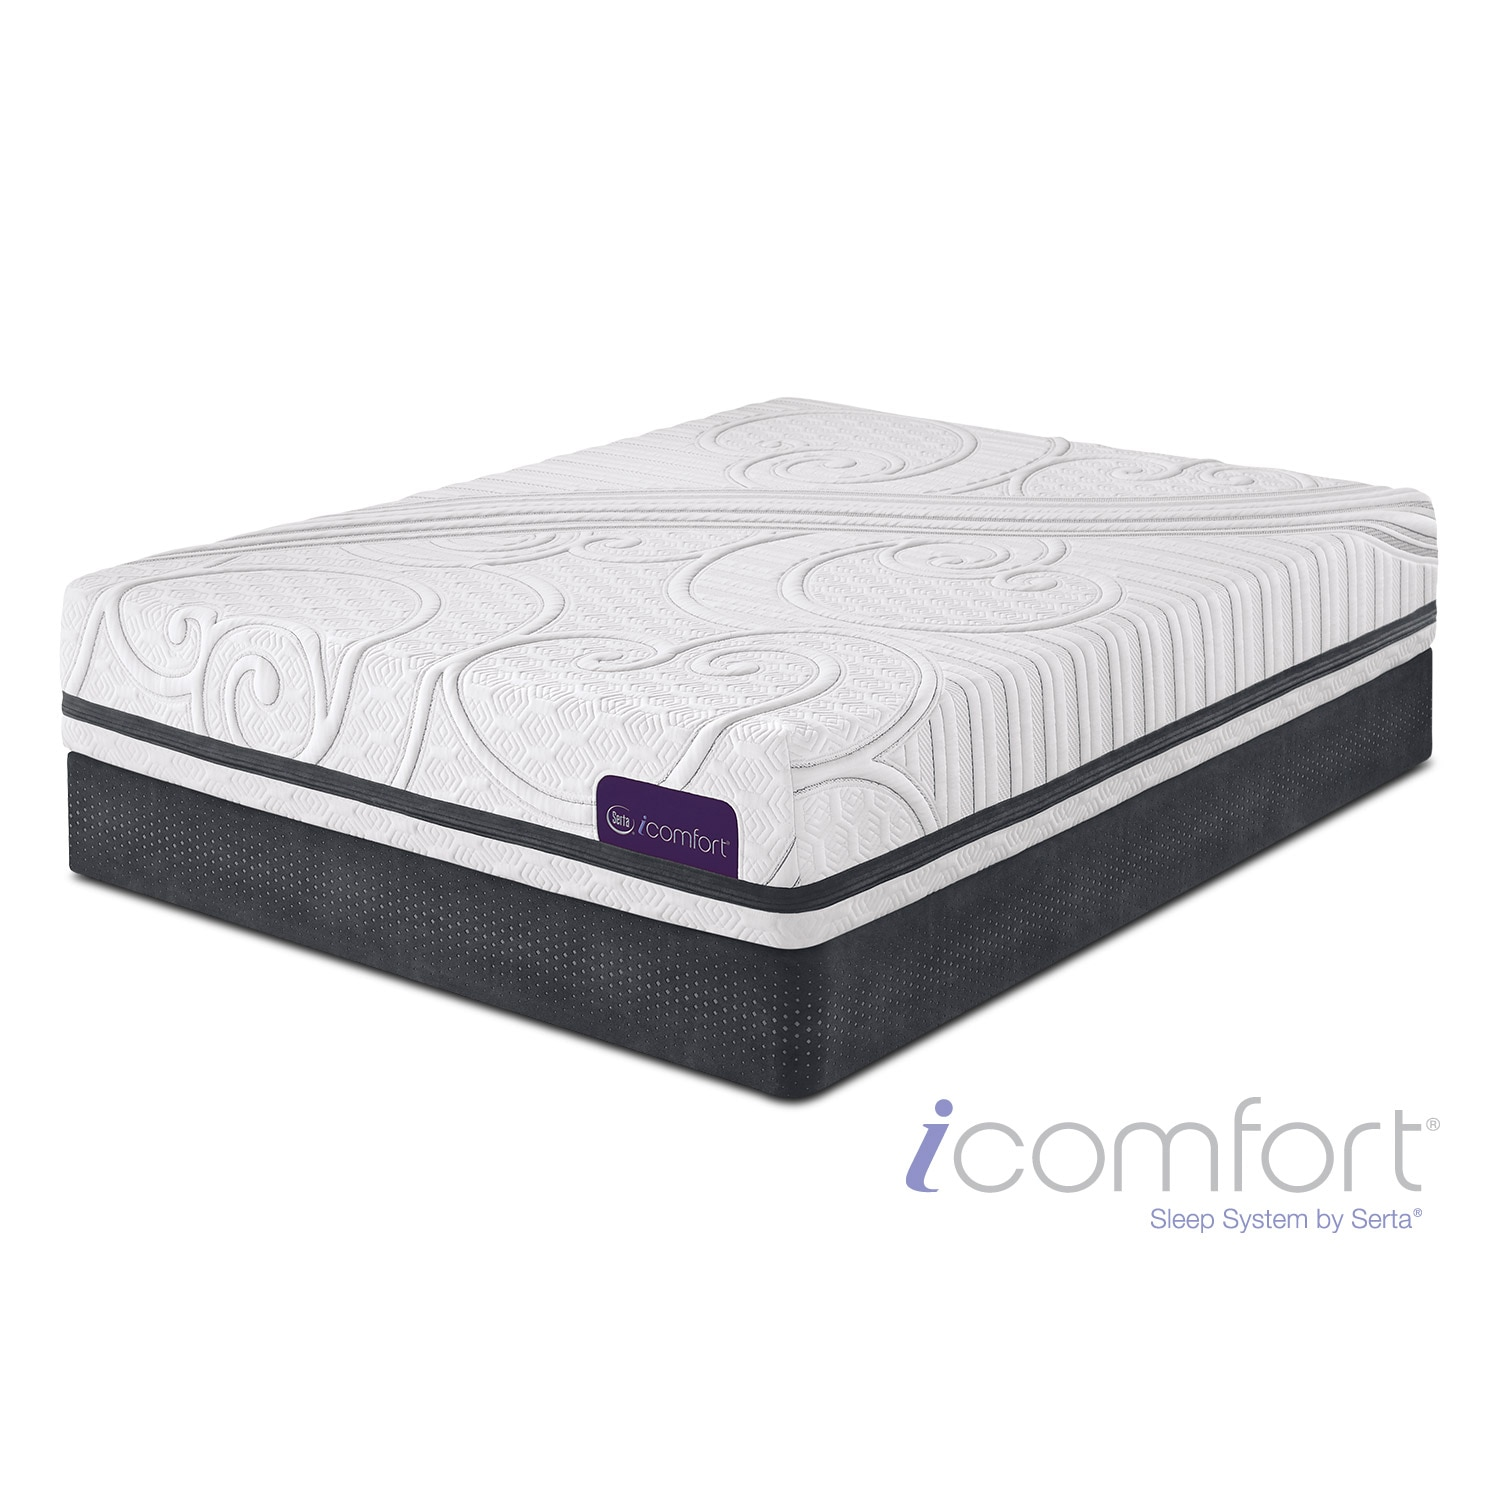 [Savant III Firm Full Mattress/Foundation Set]